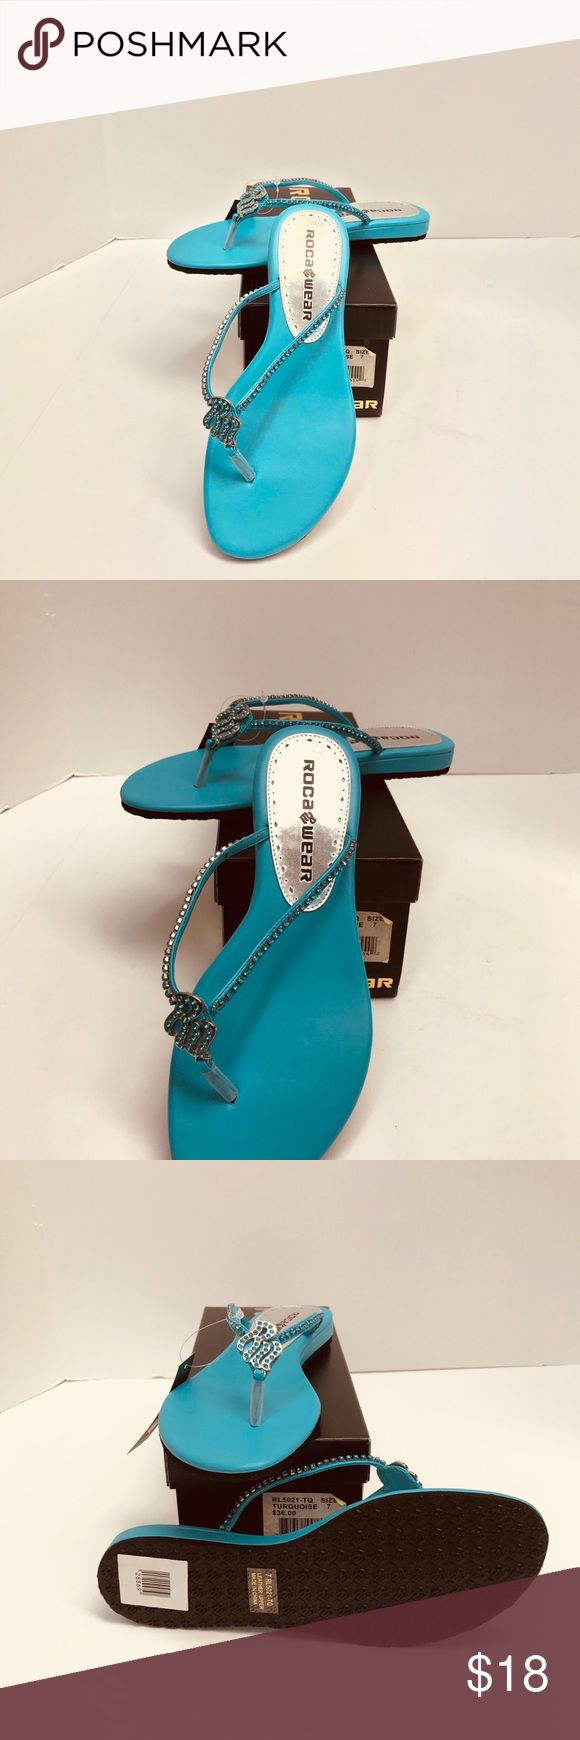 Ladies RocaWear Sandals Turquoise Size 7 Turquoise Sandals by RocaWear Size 7 with Rhinestones Rocawear Shoes Sandals